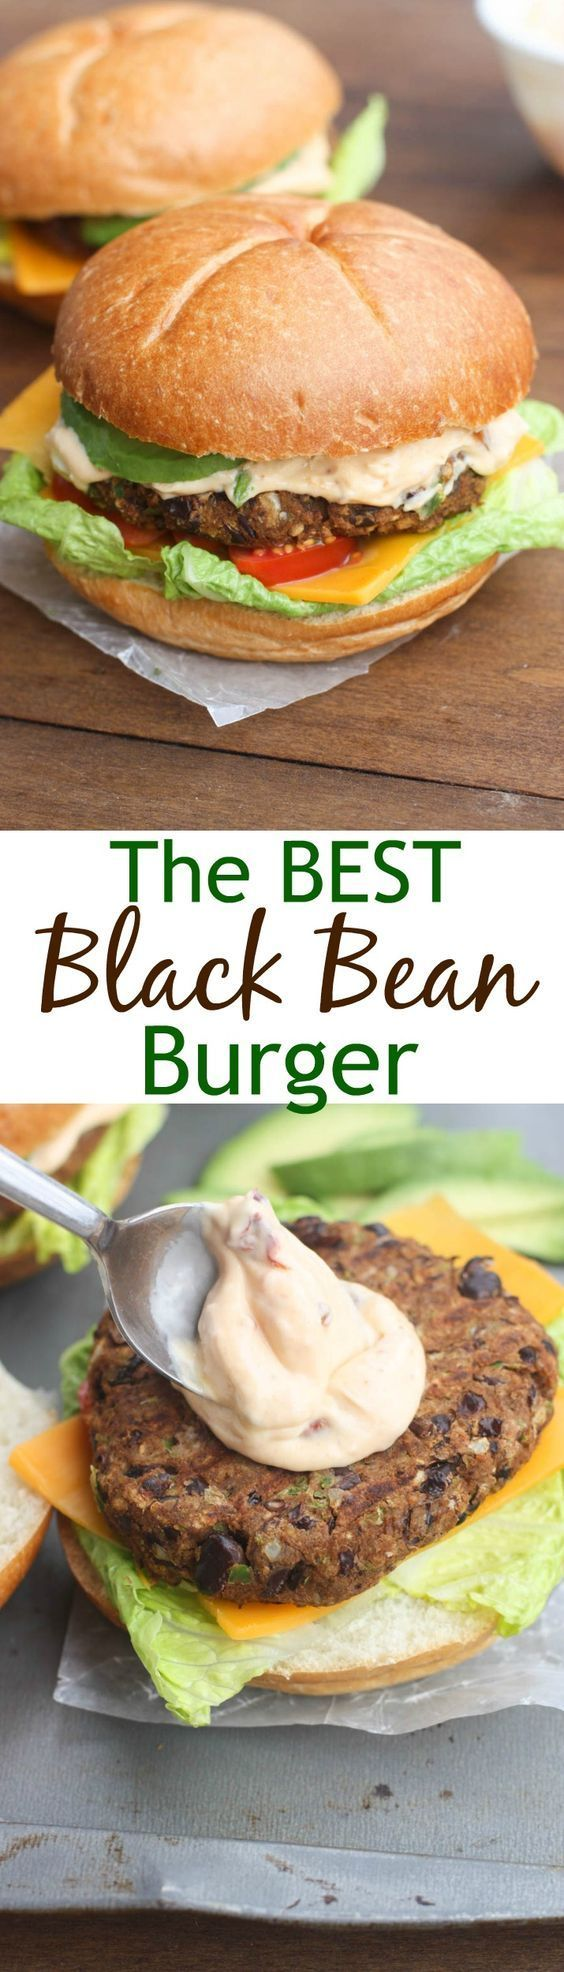 The BEST Black Bean Burgers with chipotle mayo sauce. | Tastes Better From Scratch: